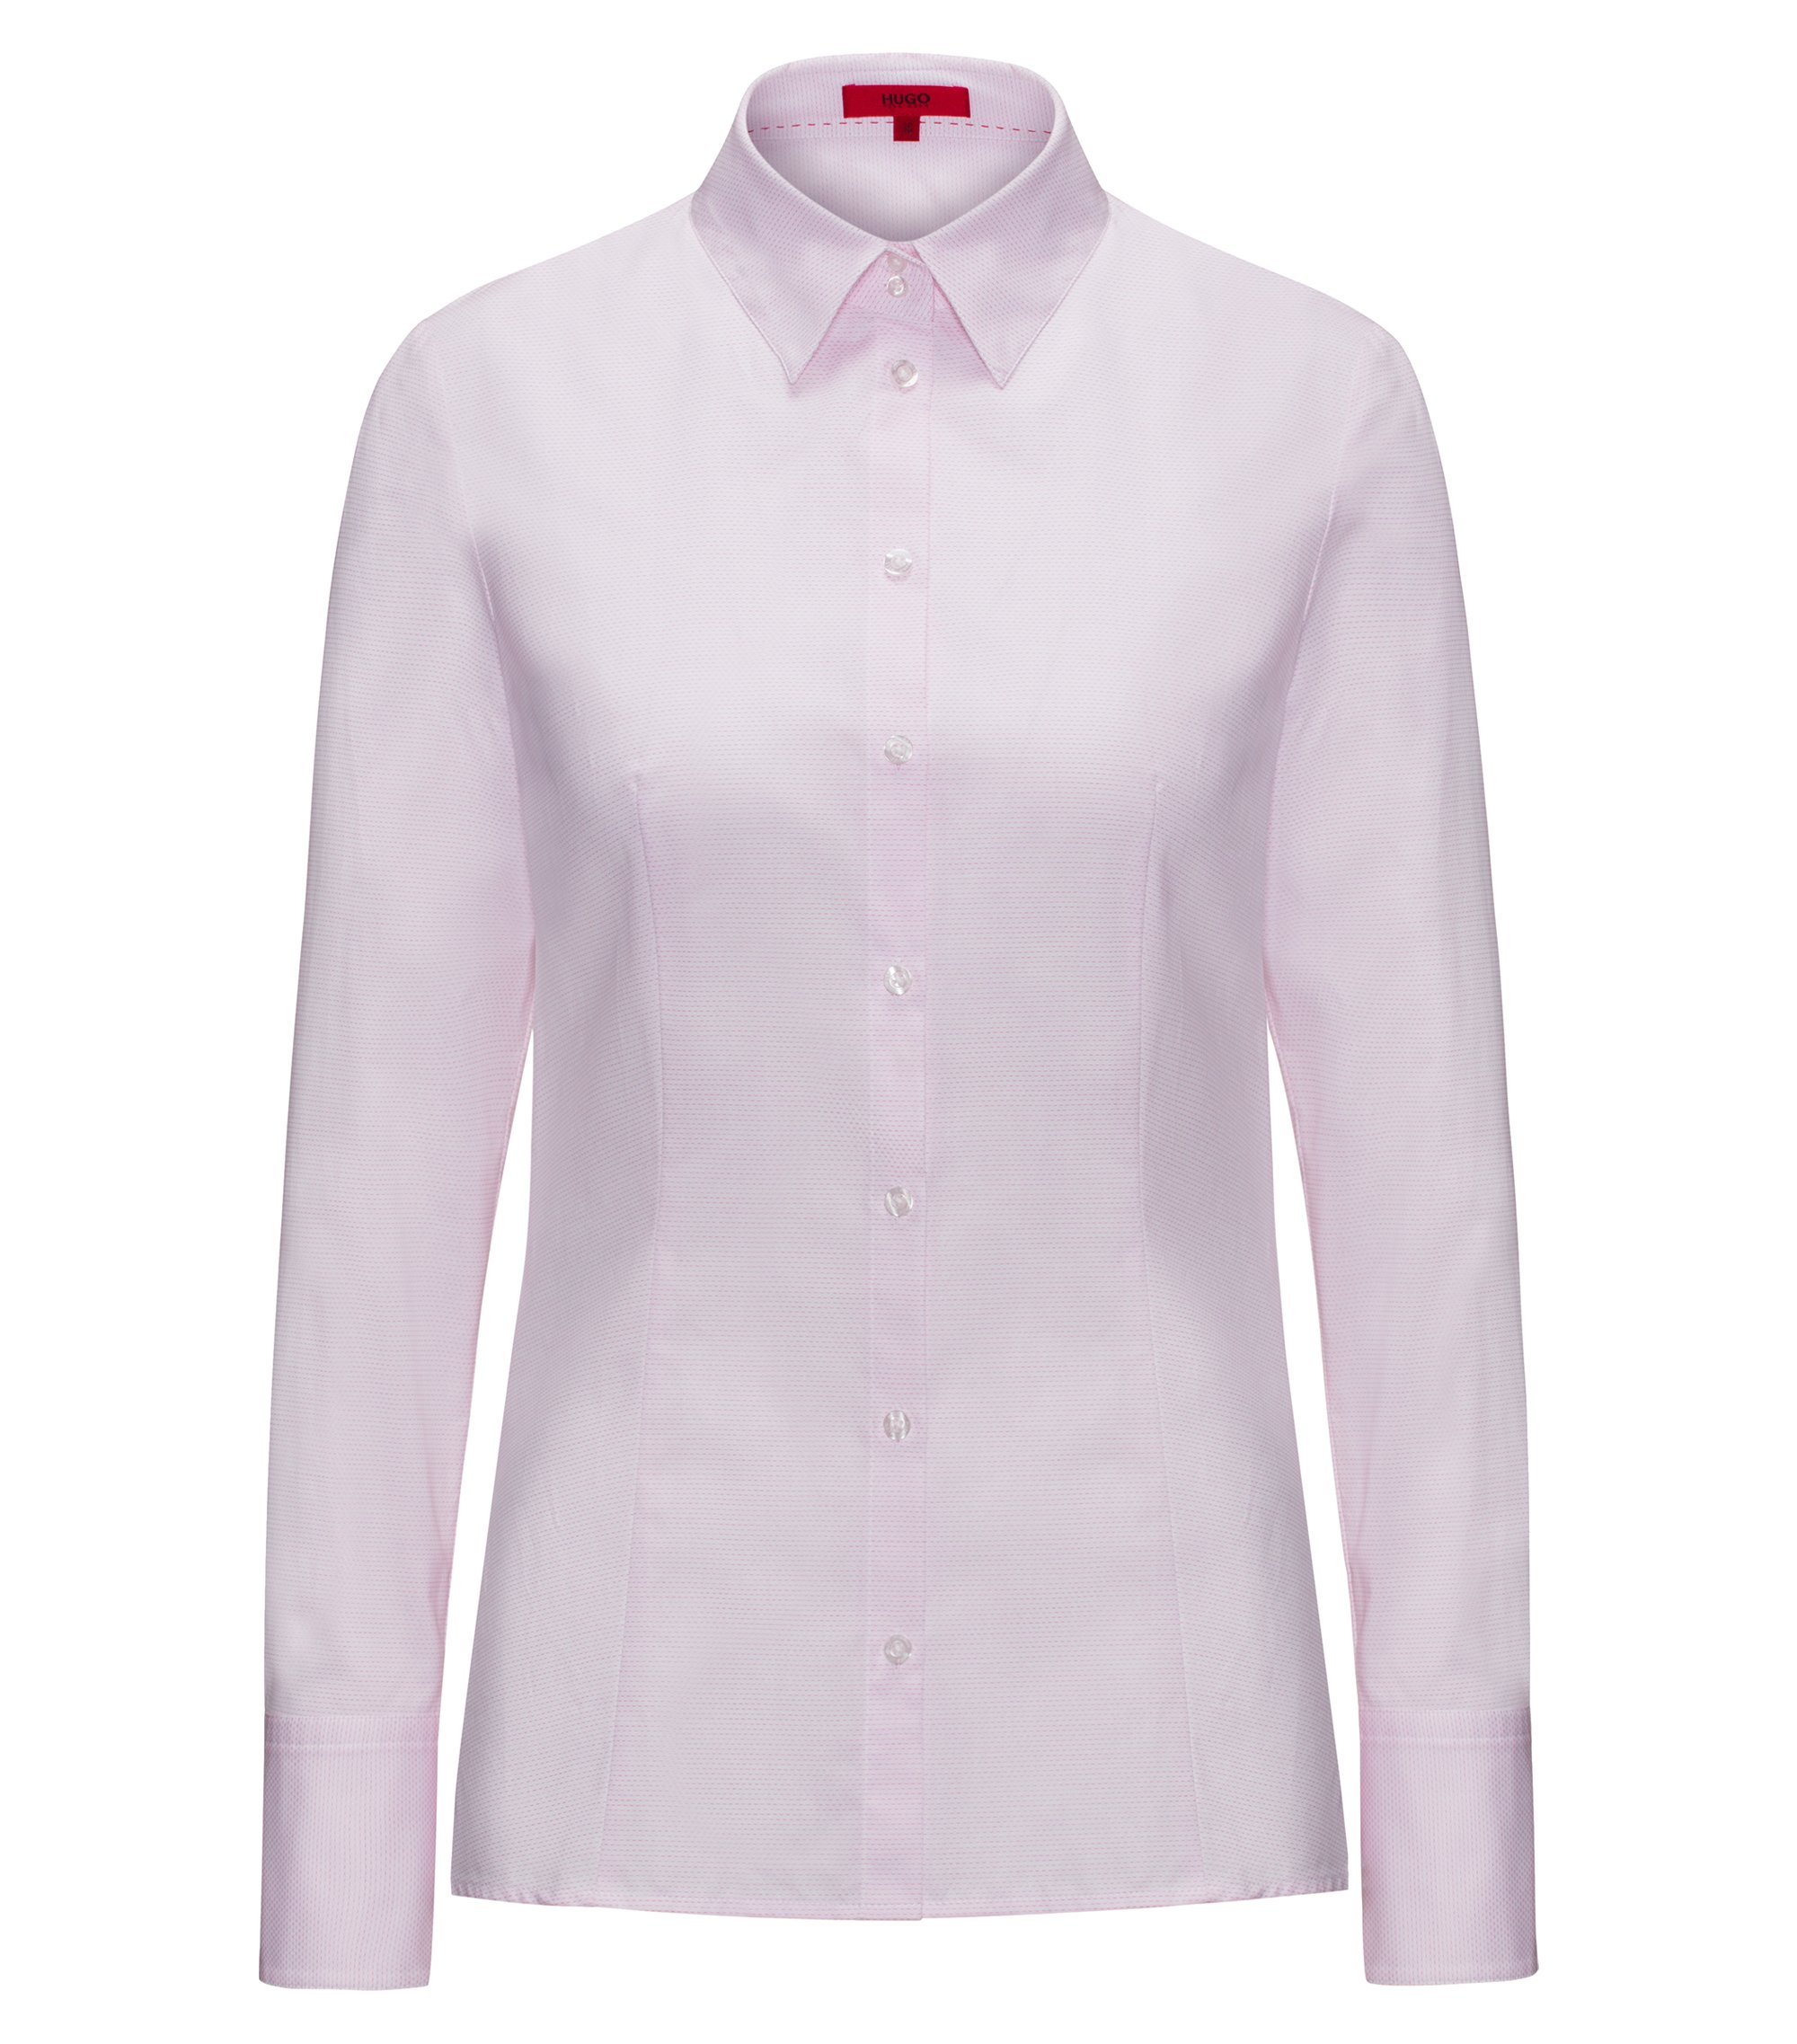 Slim-fit shirt in dobby cotton, light pink